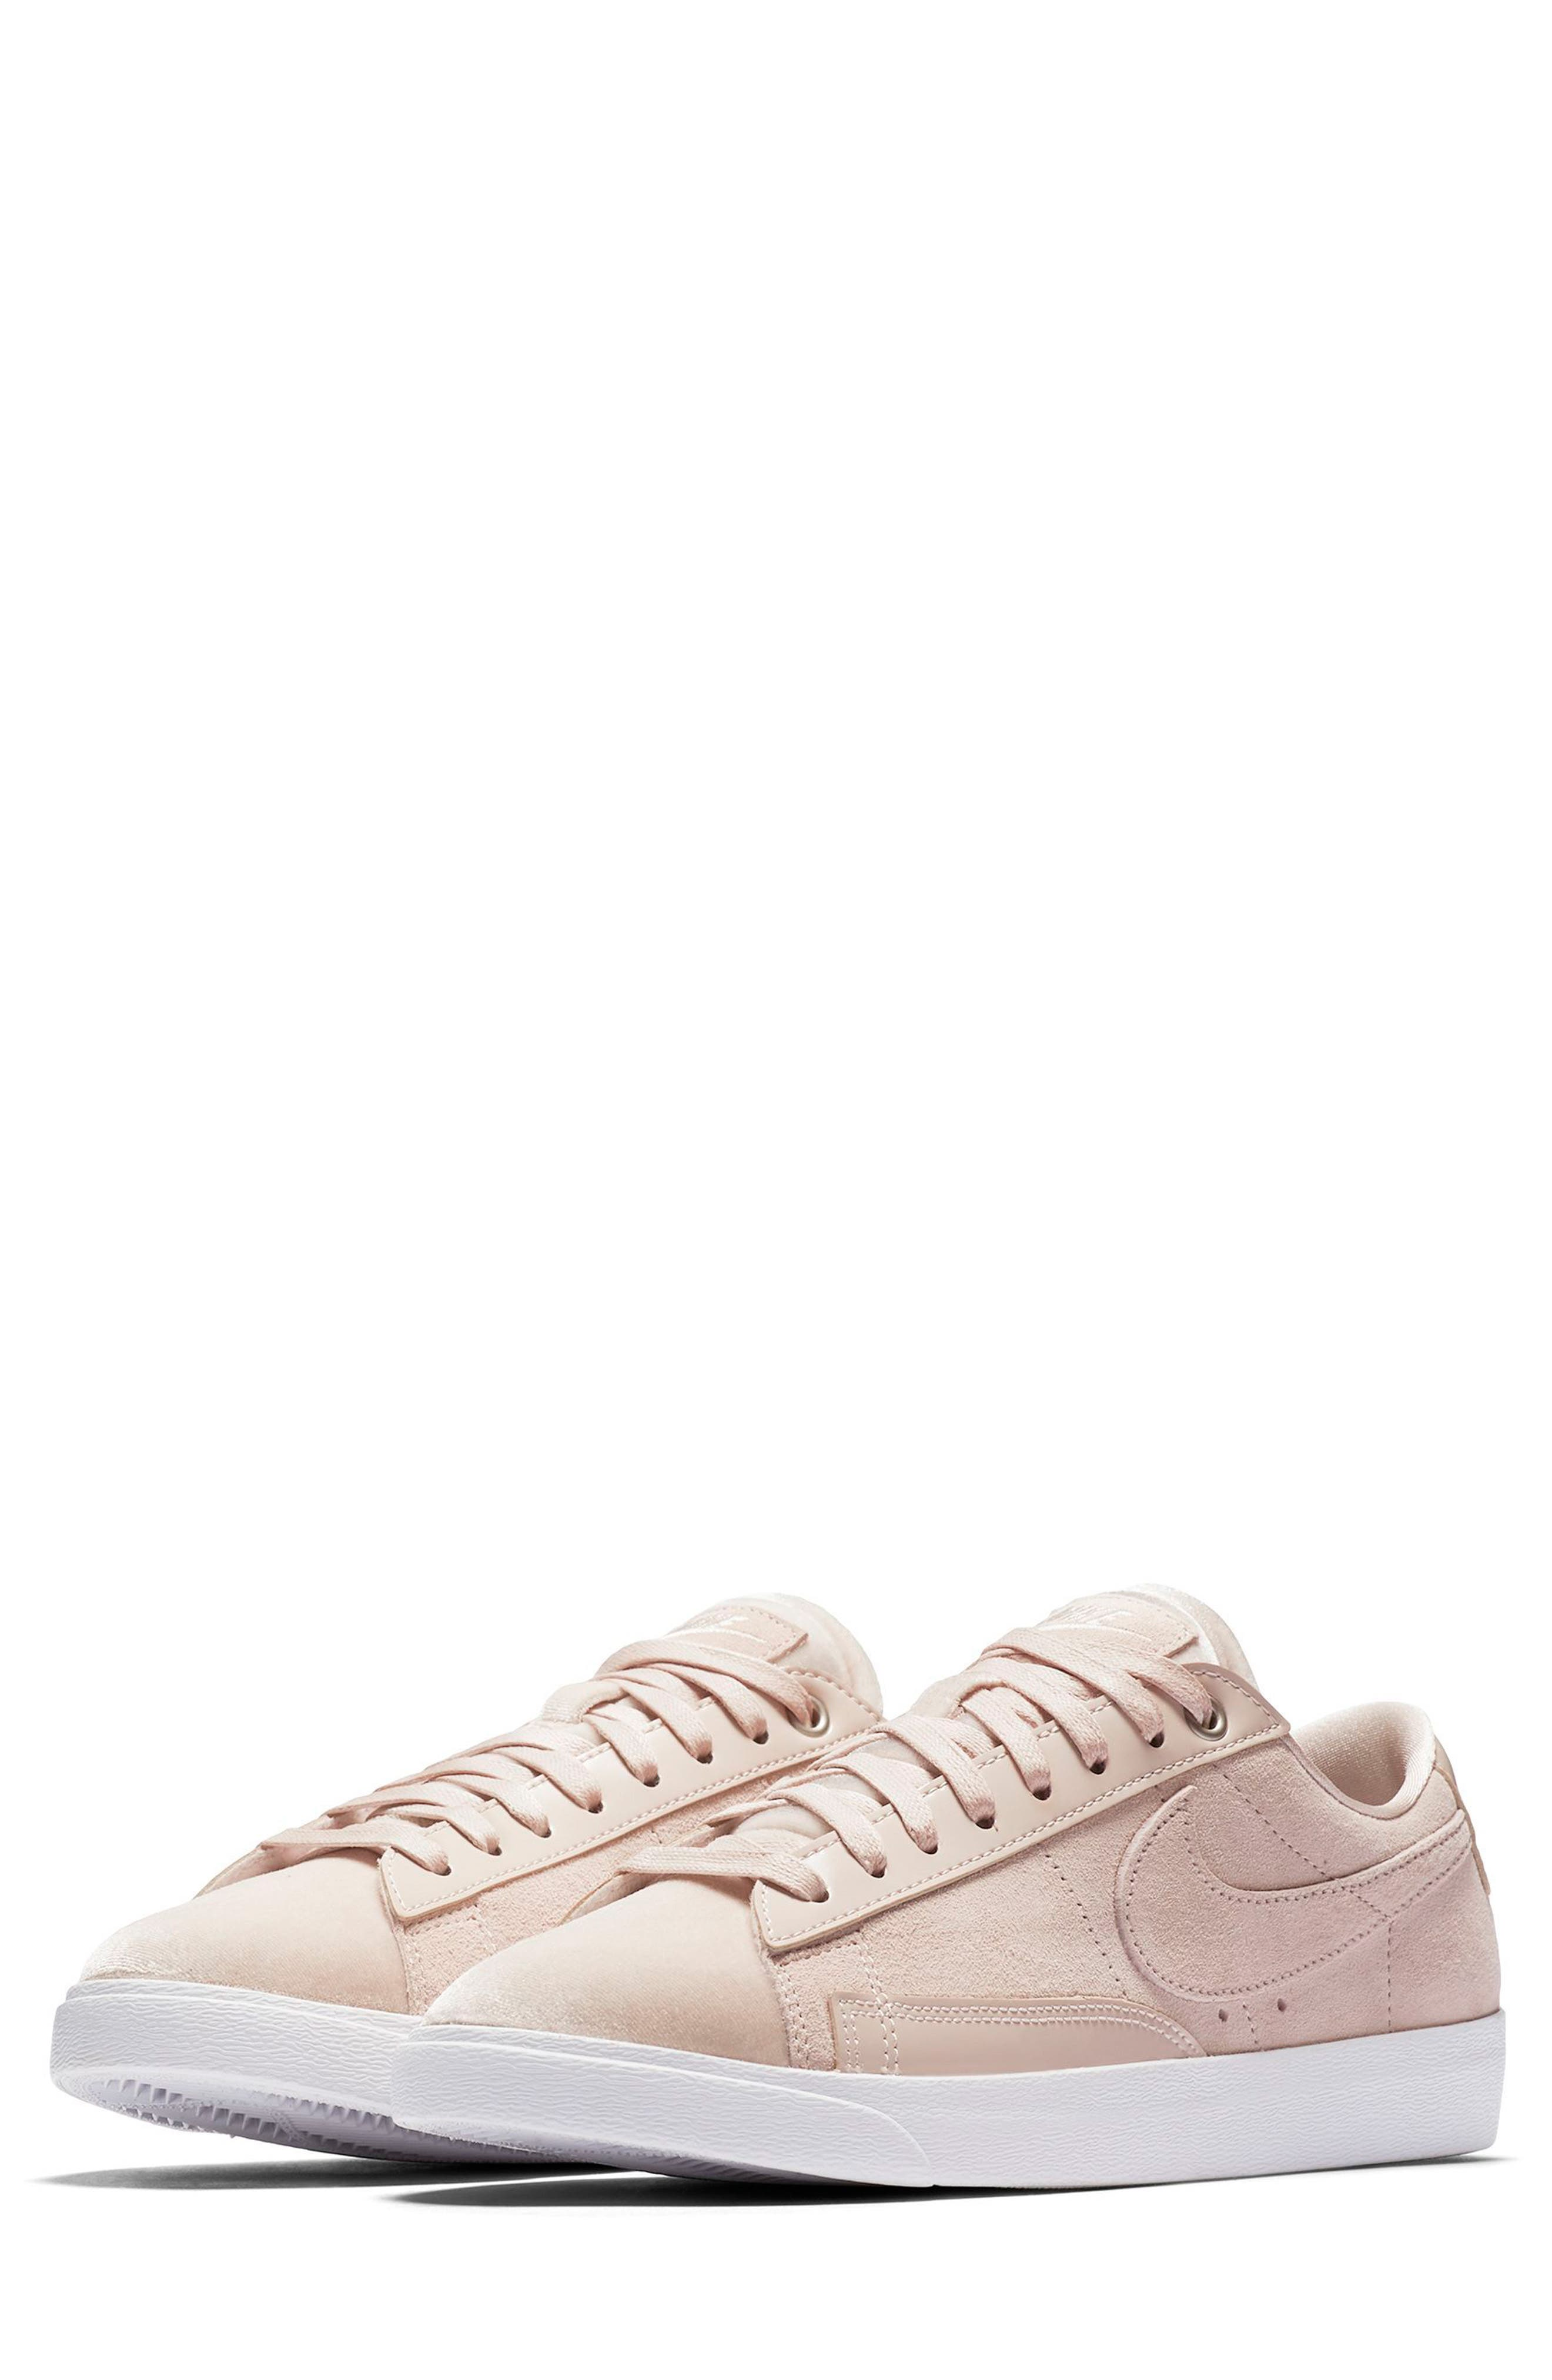 Blazer Low LX Sneaker,                         Main,                         color, Silt Red/ Brown/ White